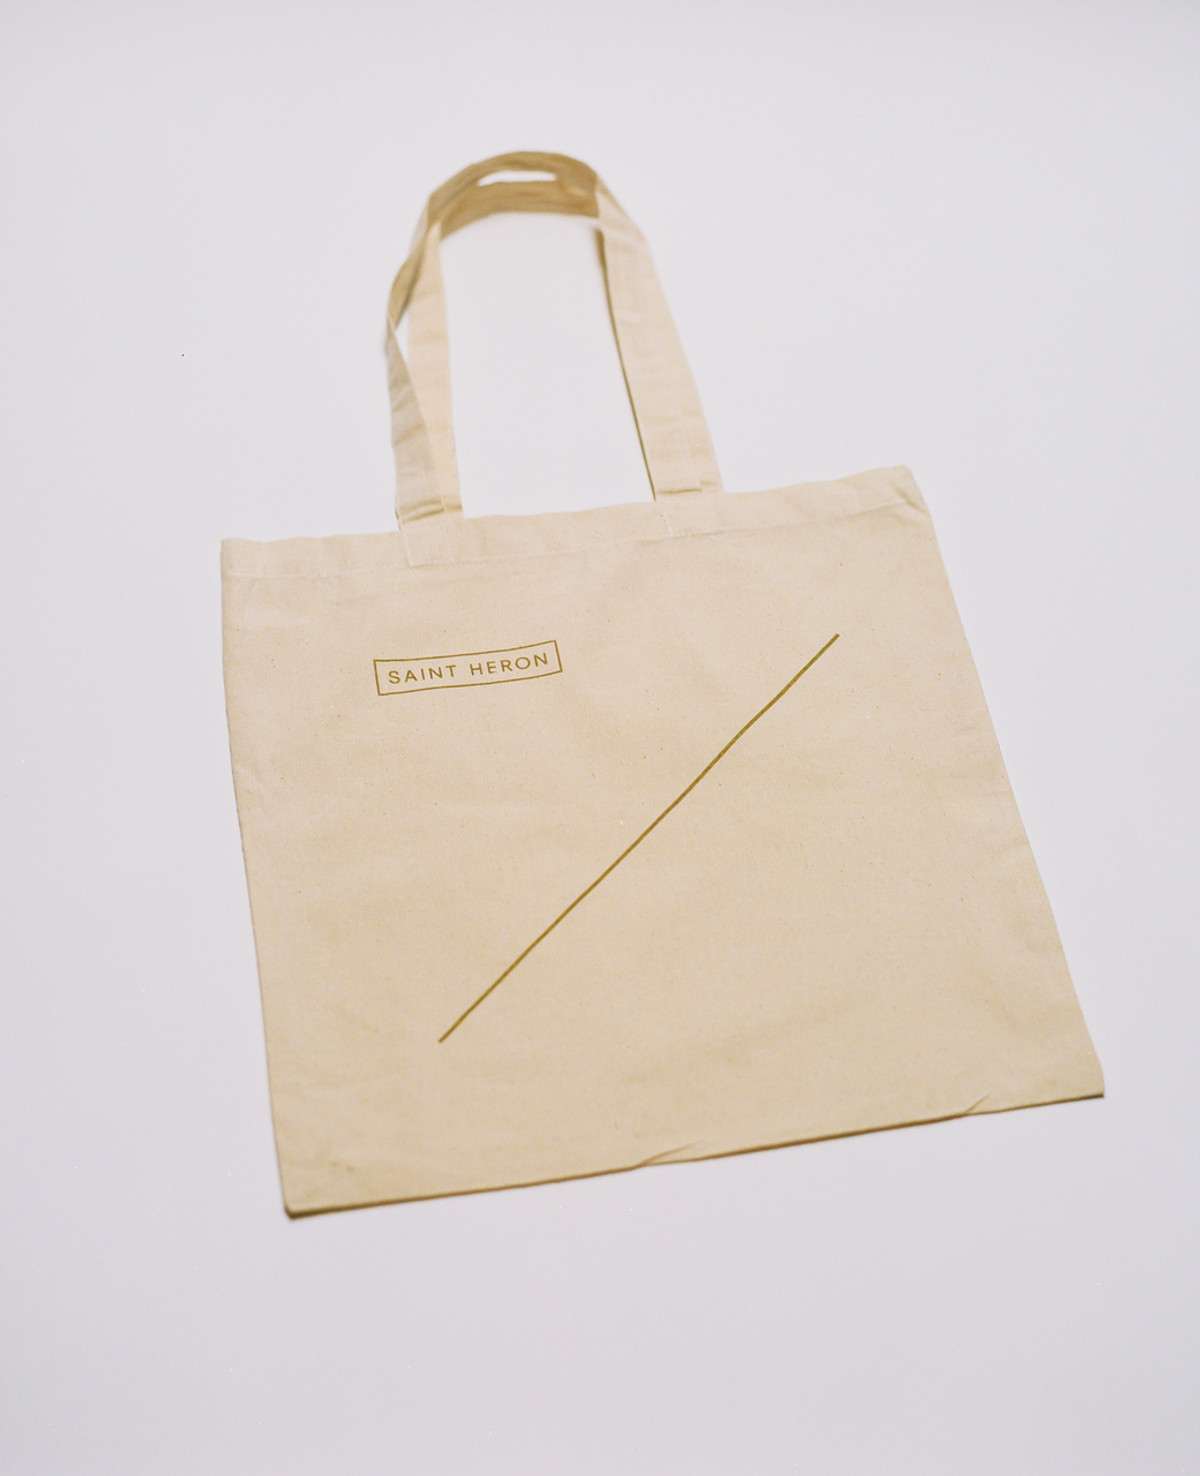 Saint Heron Tote Bag - Golden Line